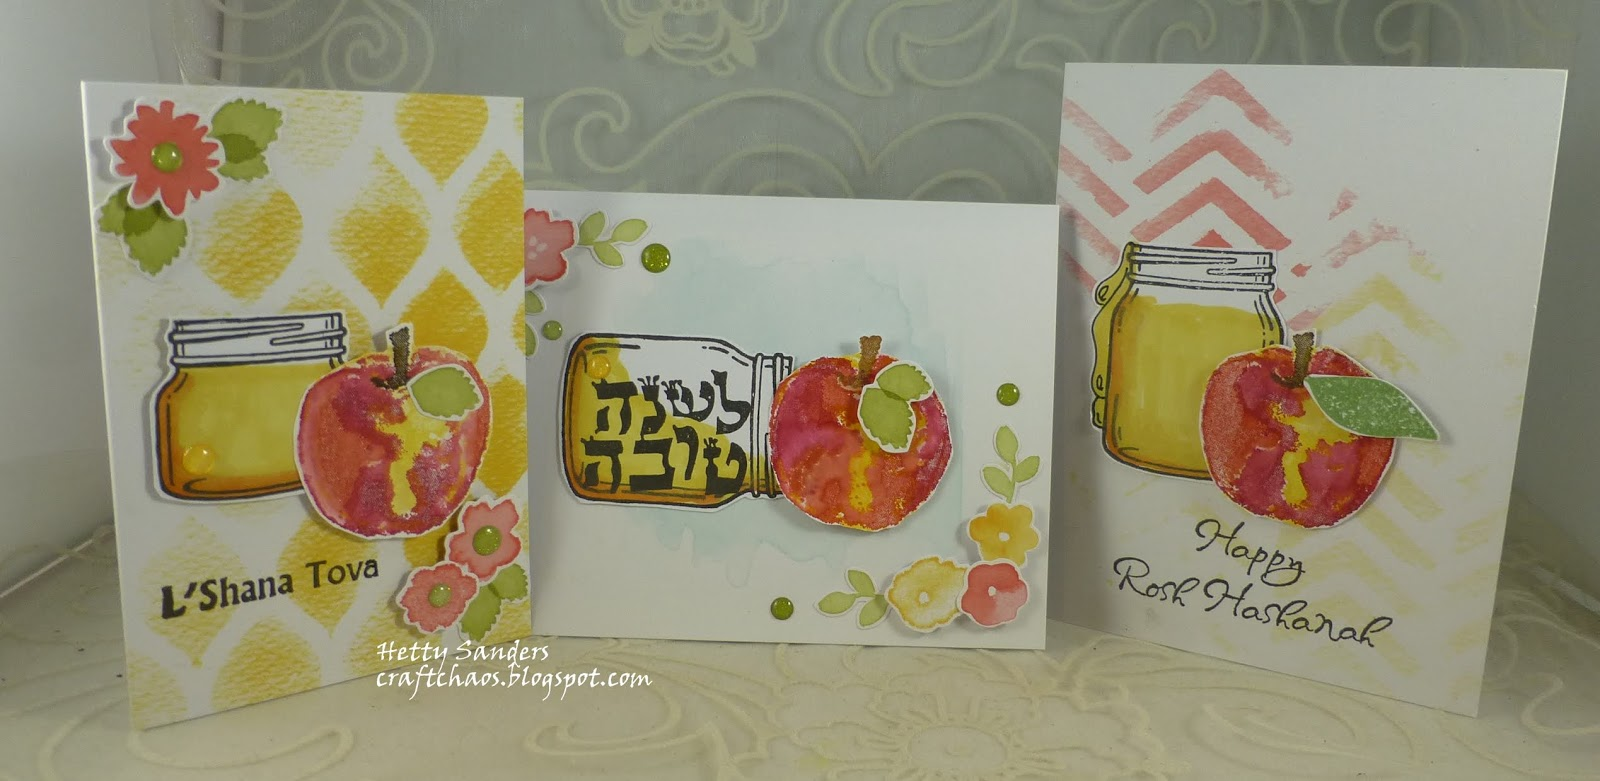 Craftchaos More Inspiration For Jewish New Year Cards